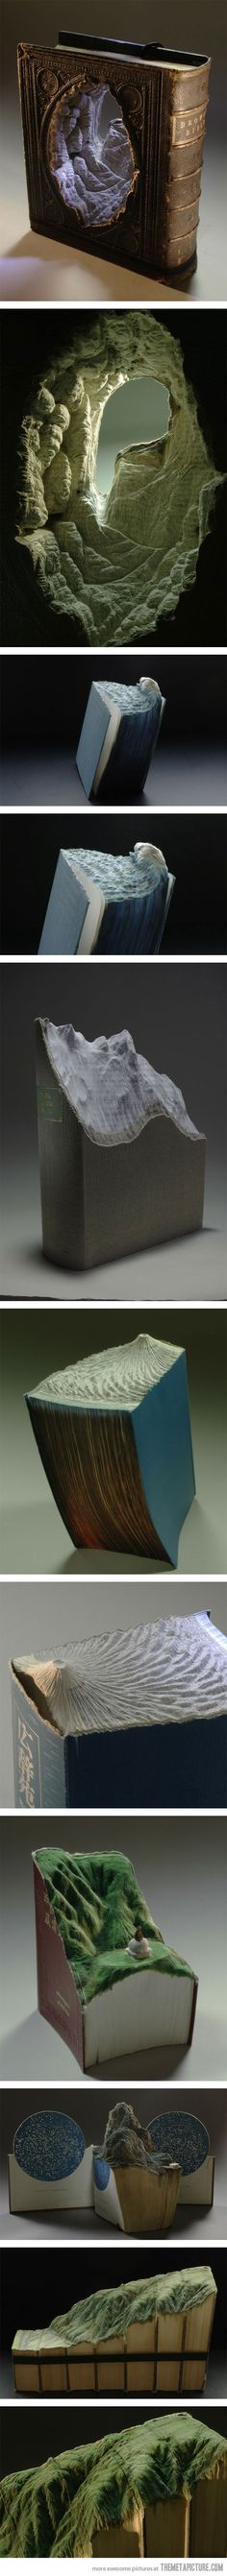 Carved Book Landscapes Partant pour le recyclage